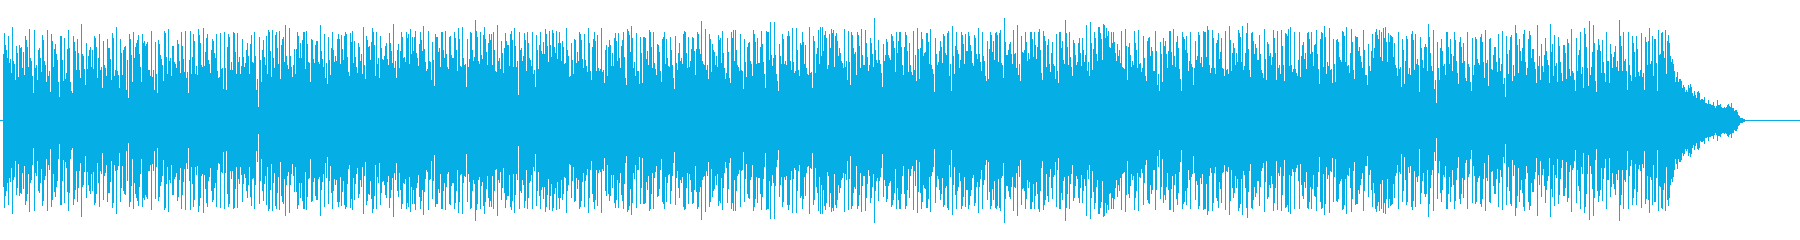 Bright rhythmic techno BGM's reproduced waveform